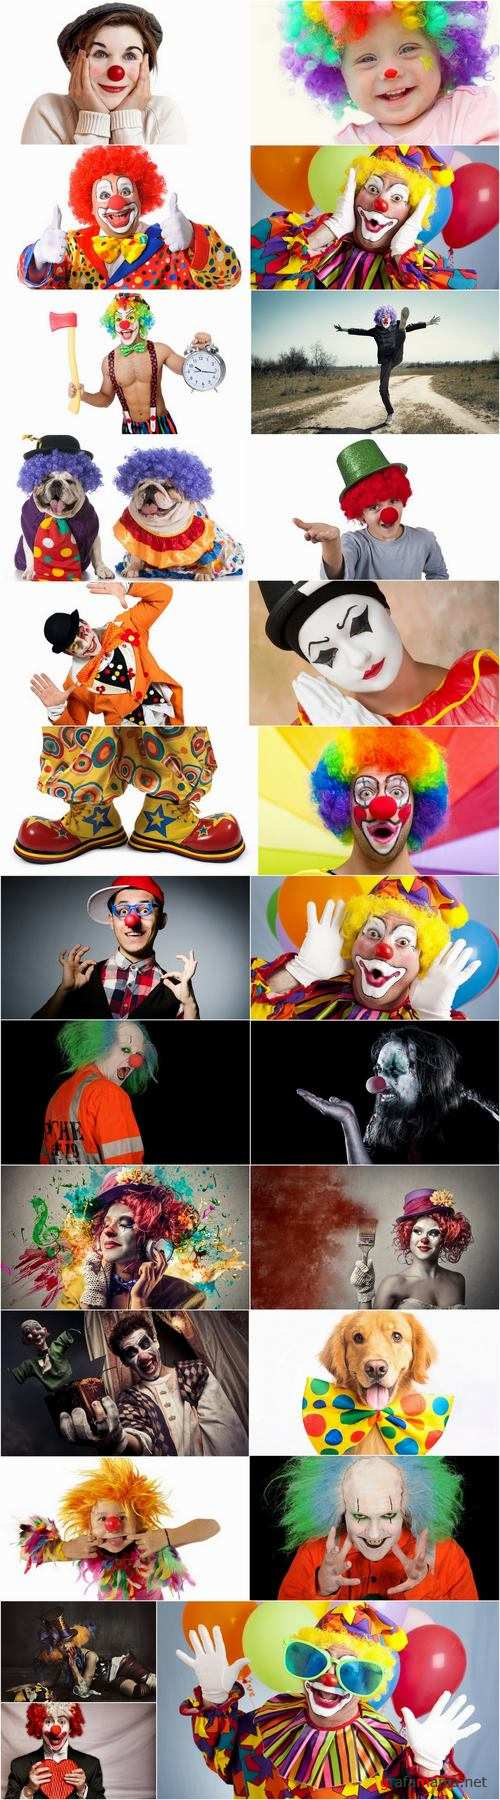 Mime clown laughter 25 HQ Jpeg